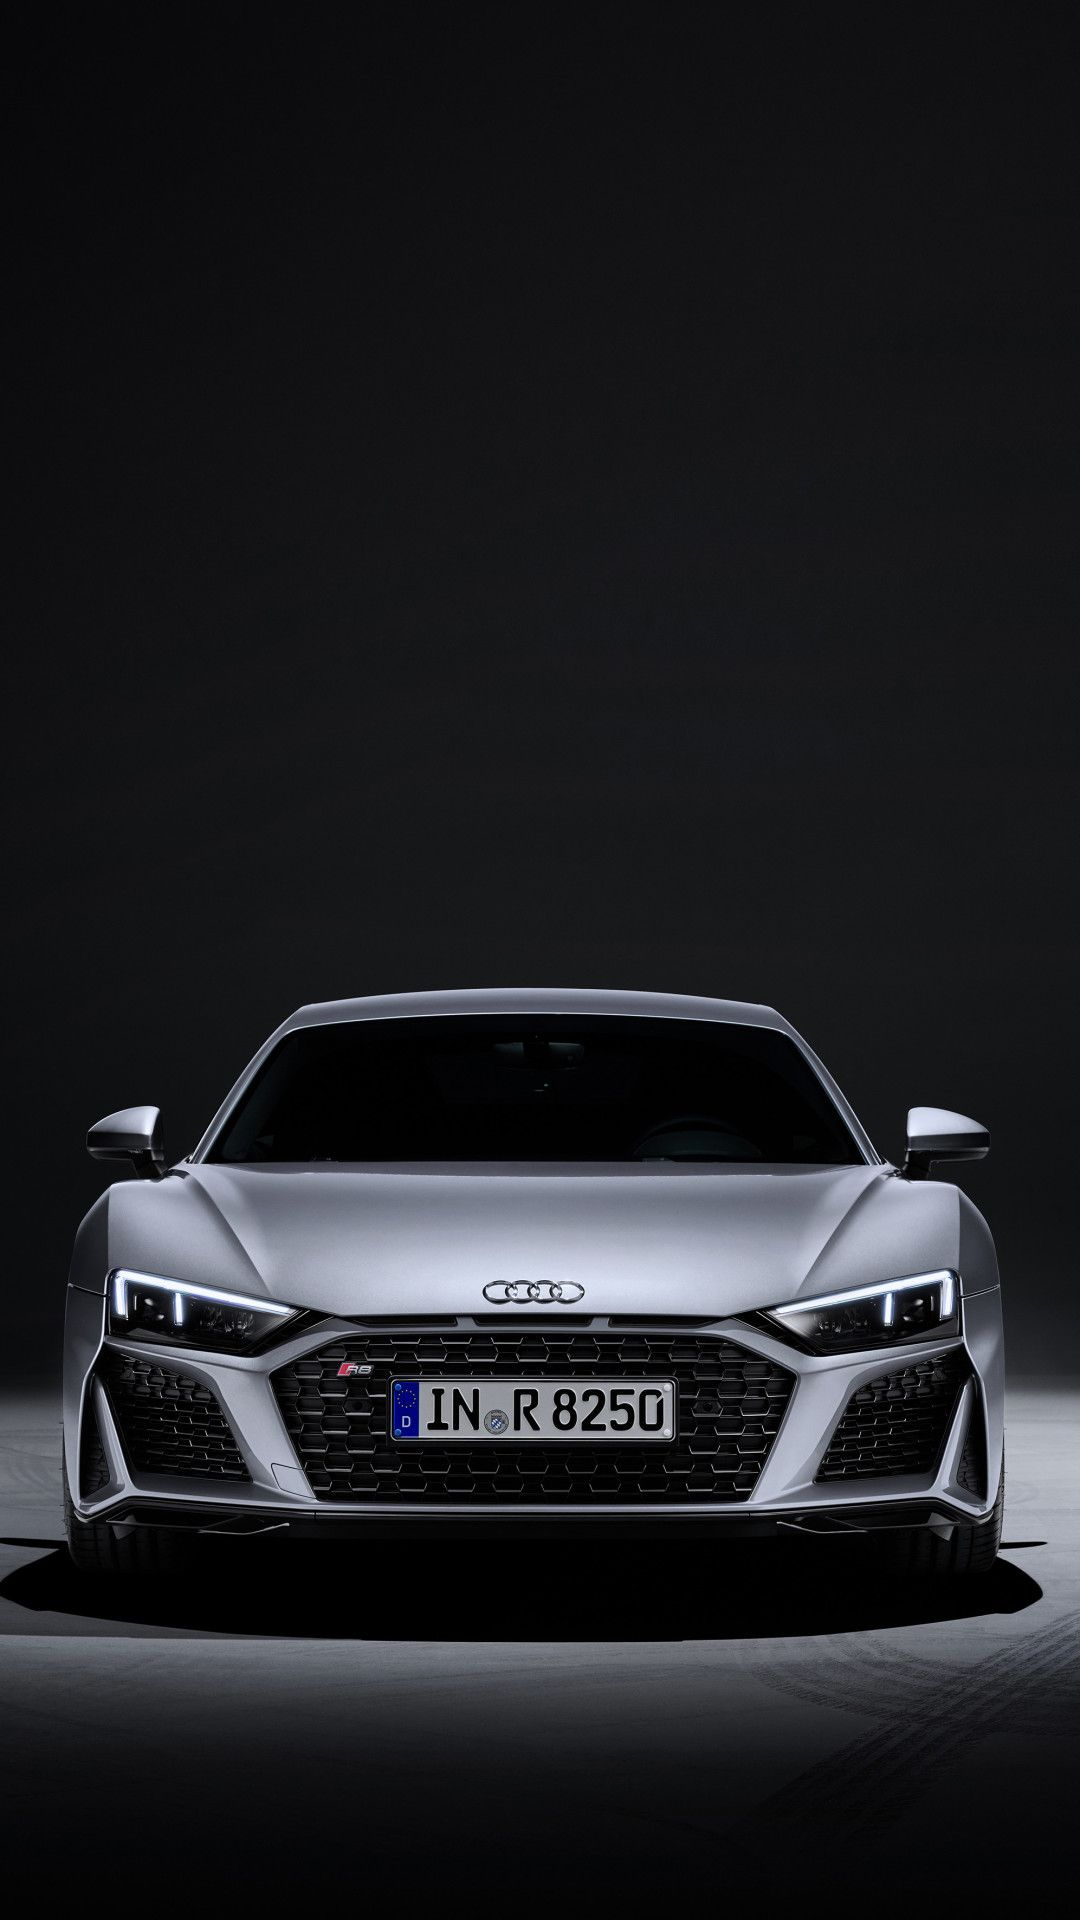 Audi R8 V10 Rwd Coupe 2019 Mobile Wallpaper Iphone Android Samsung Pixel Xiaomi Audi R8 Wallpaper Audi R8 V10 Audi R8